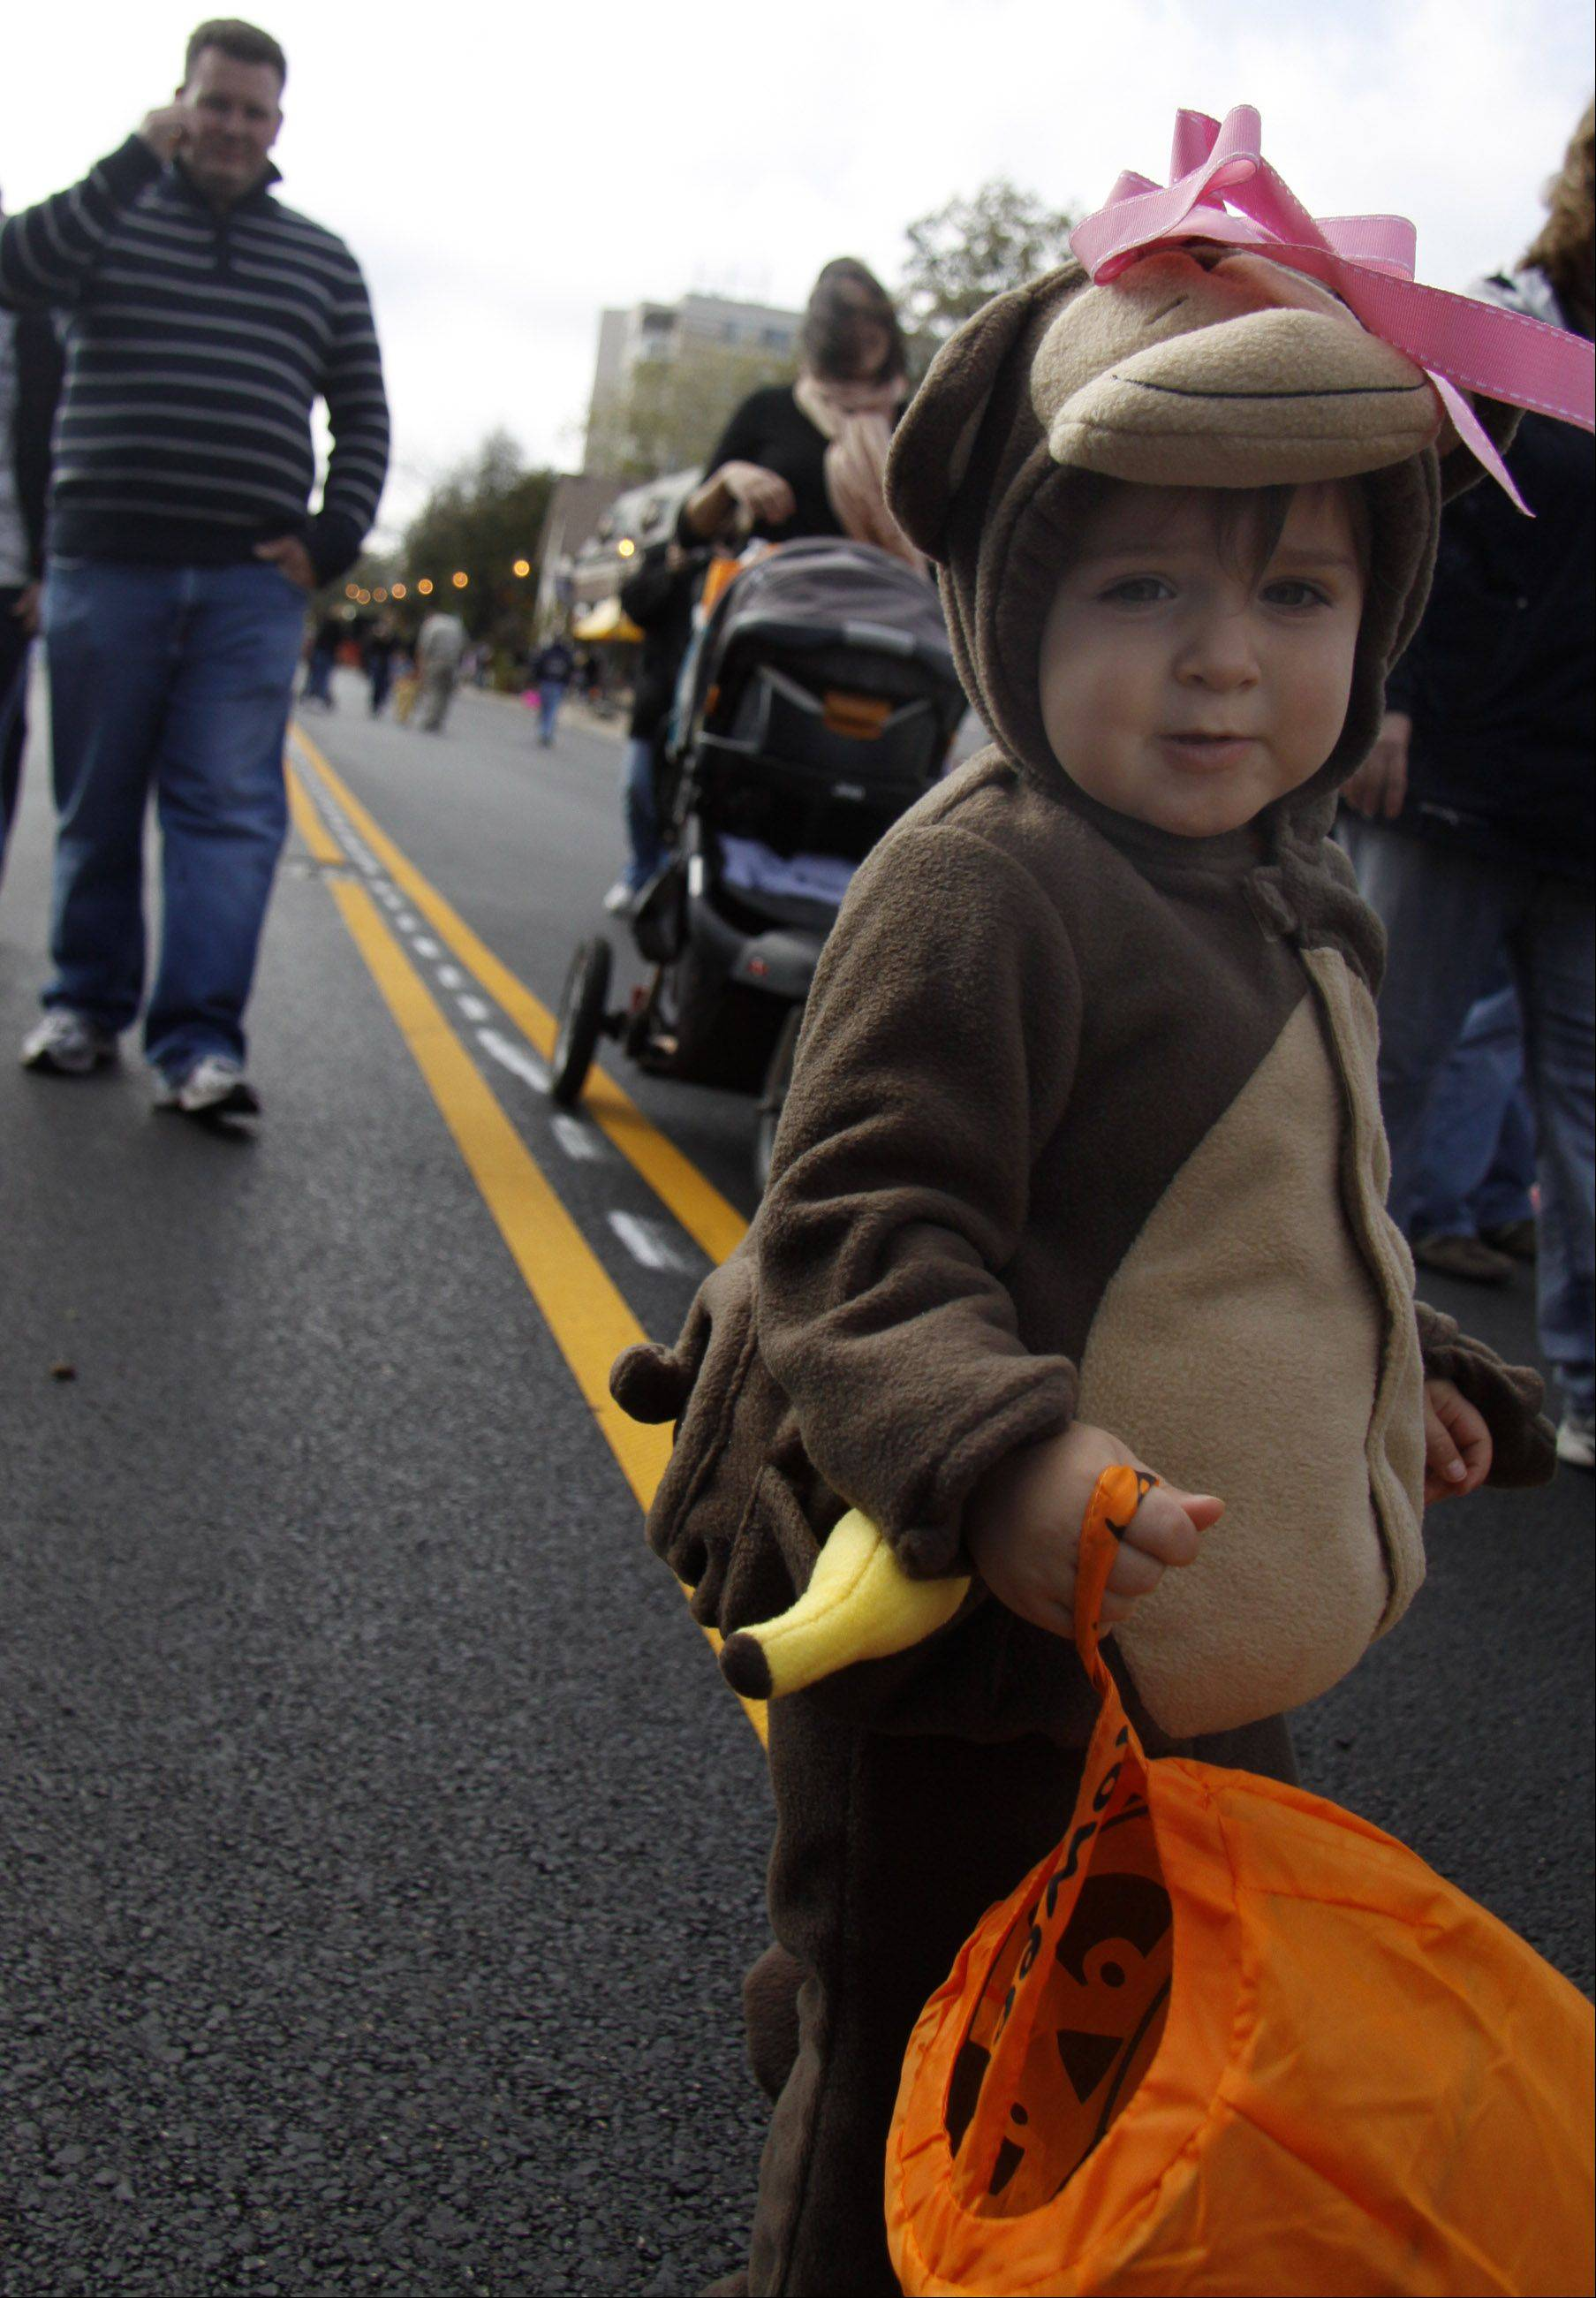 Kids can trick-or-treat at the shops of downtown Lombard from noon to 3 p.m. during the annual Spooktacular Fall Festival Sunday, Oct. 14, at St. Charles Road and Park Avenue.